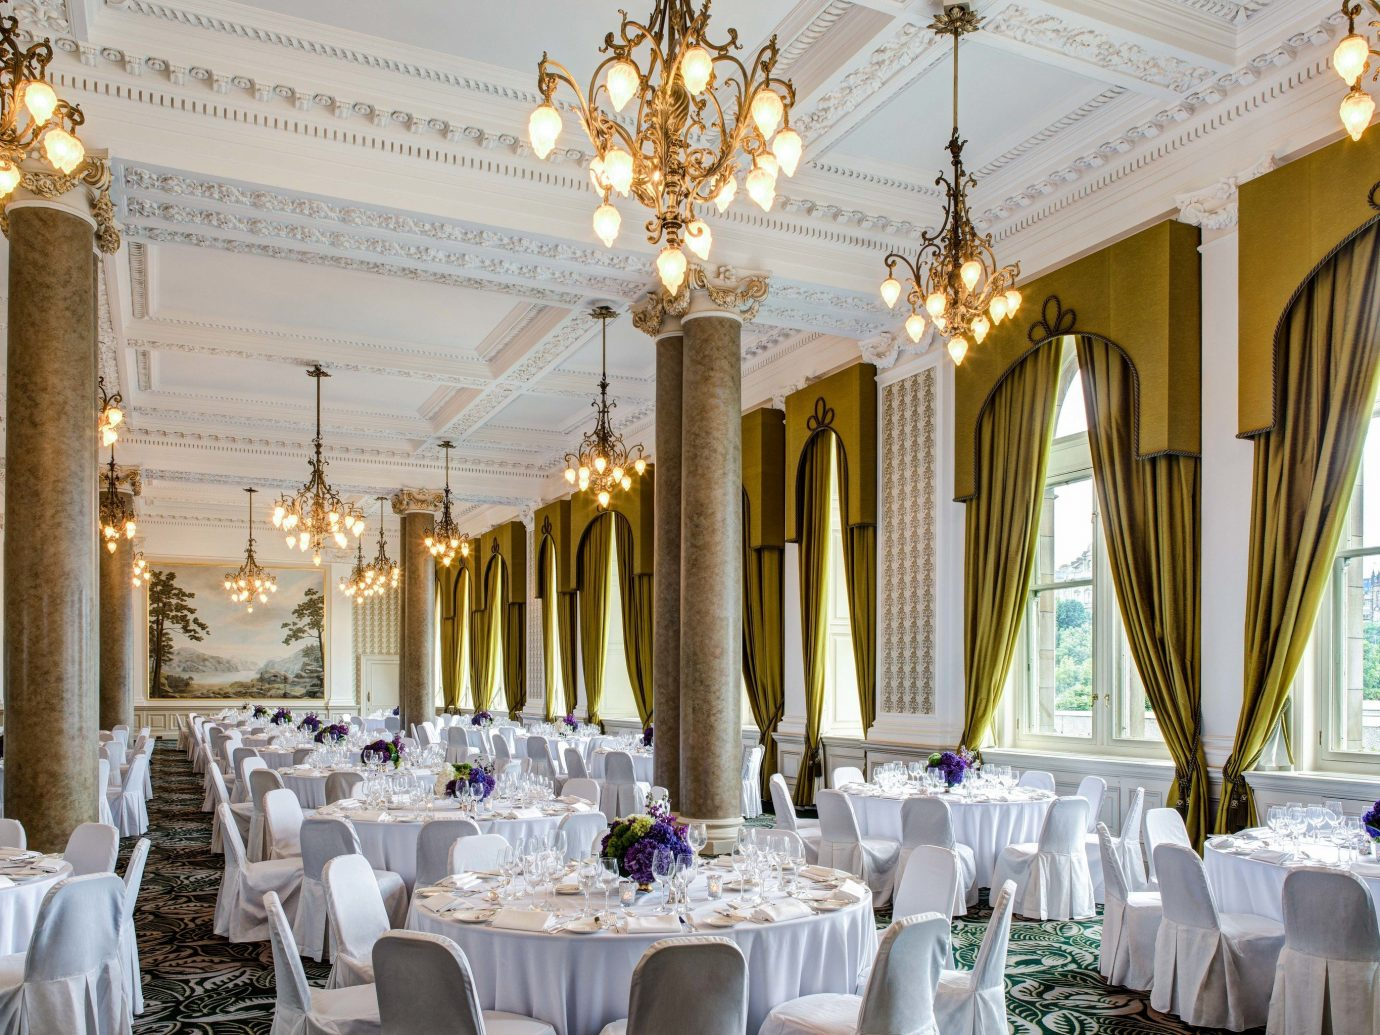 Dining room at The Balmoral